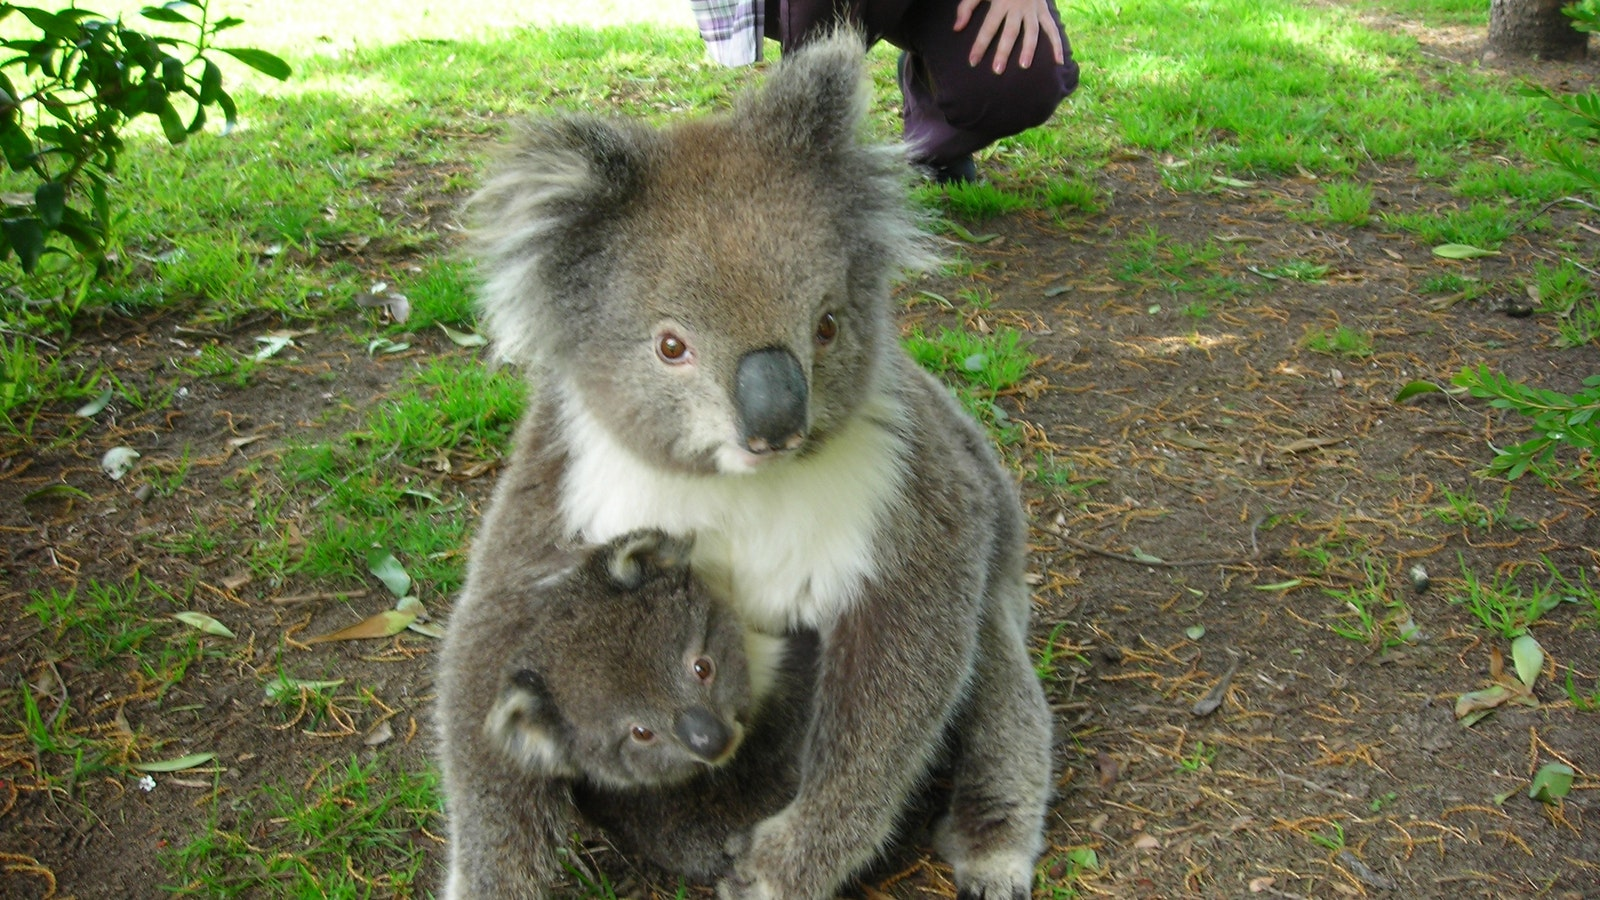 Koala and joey, Kennett River